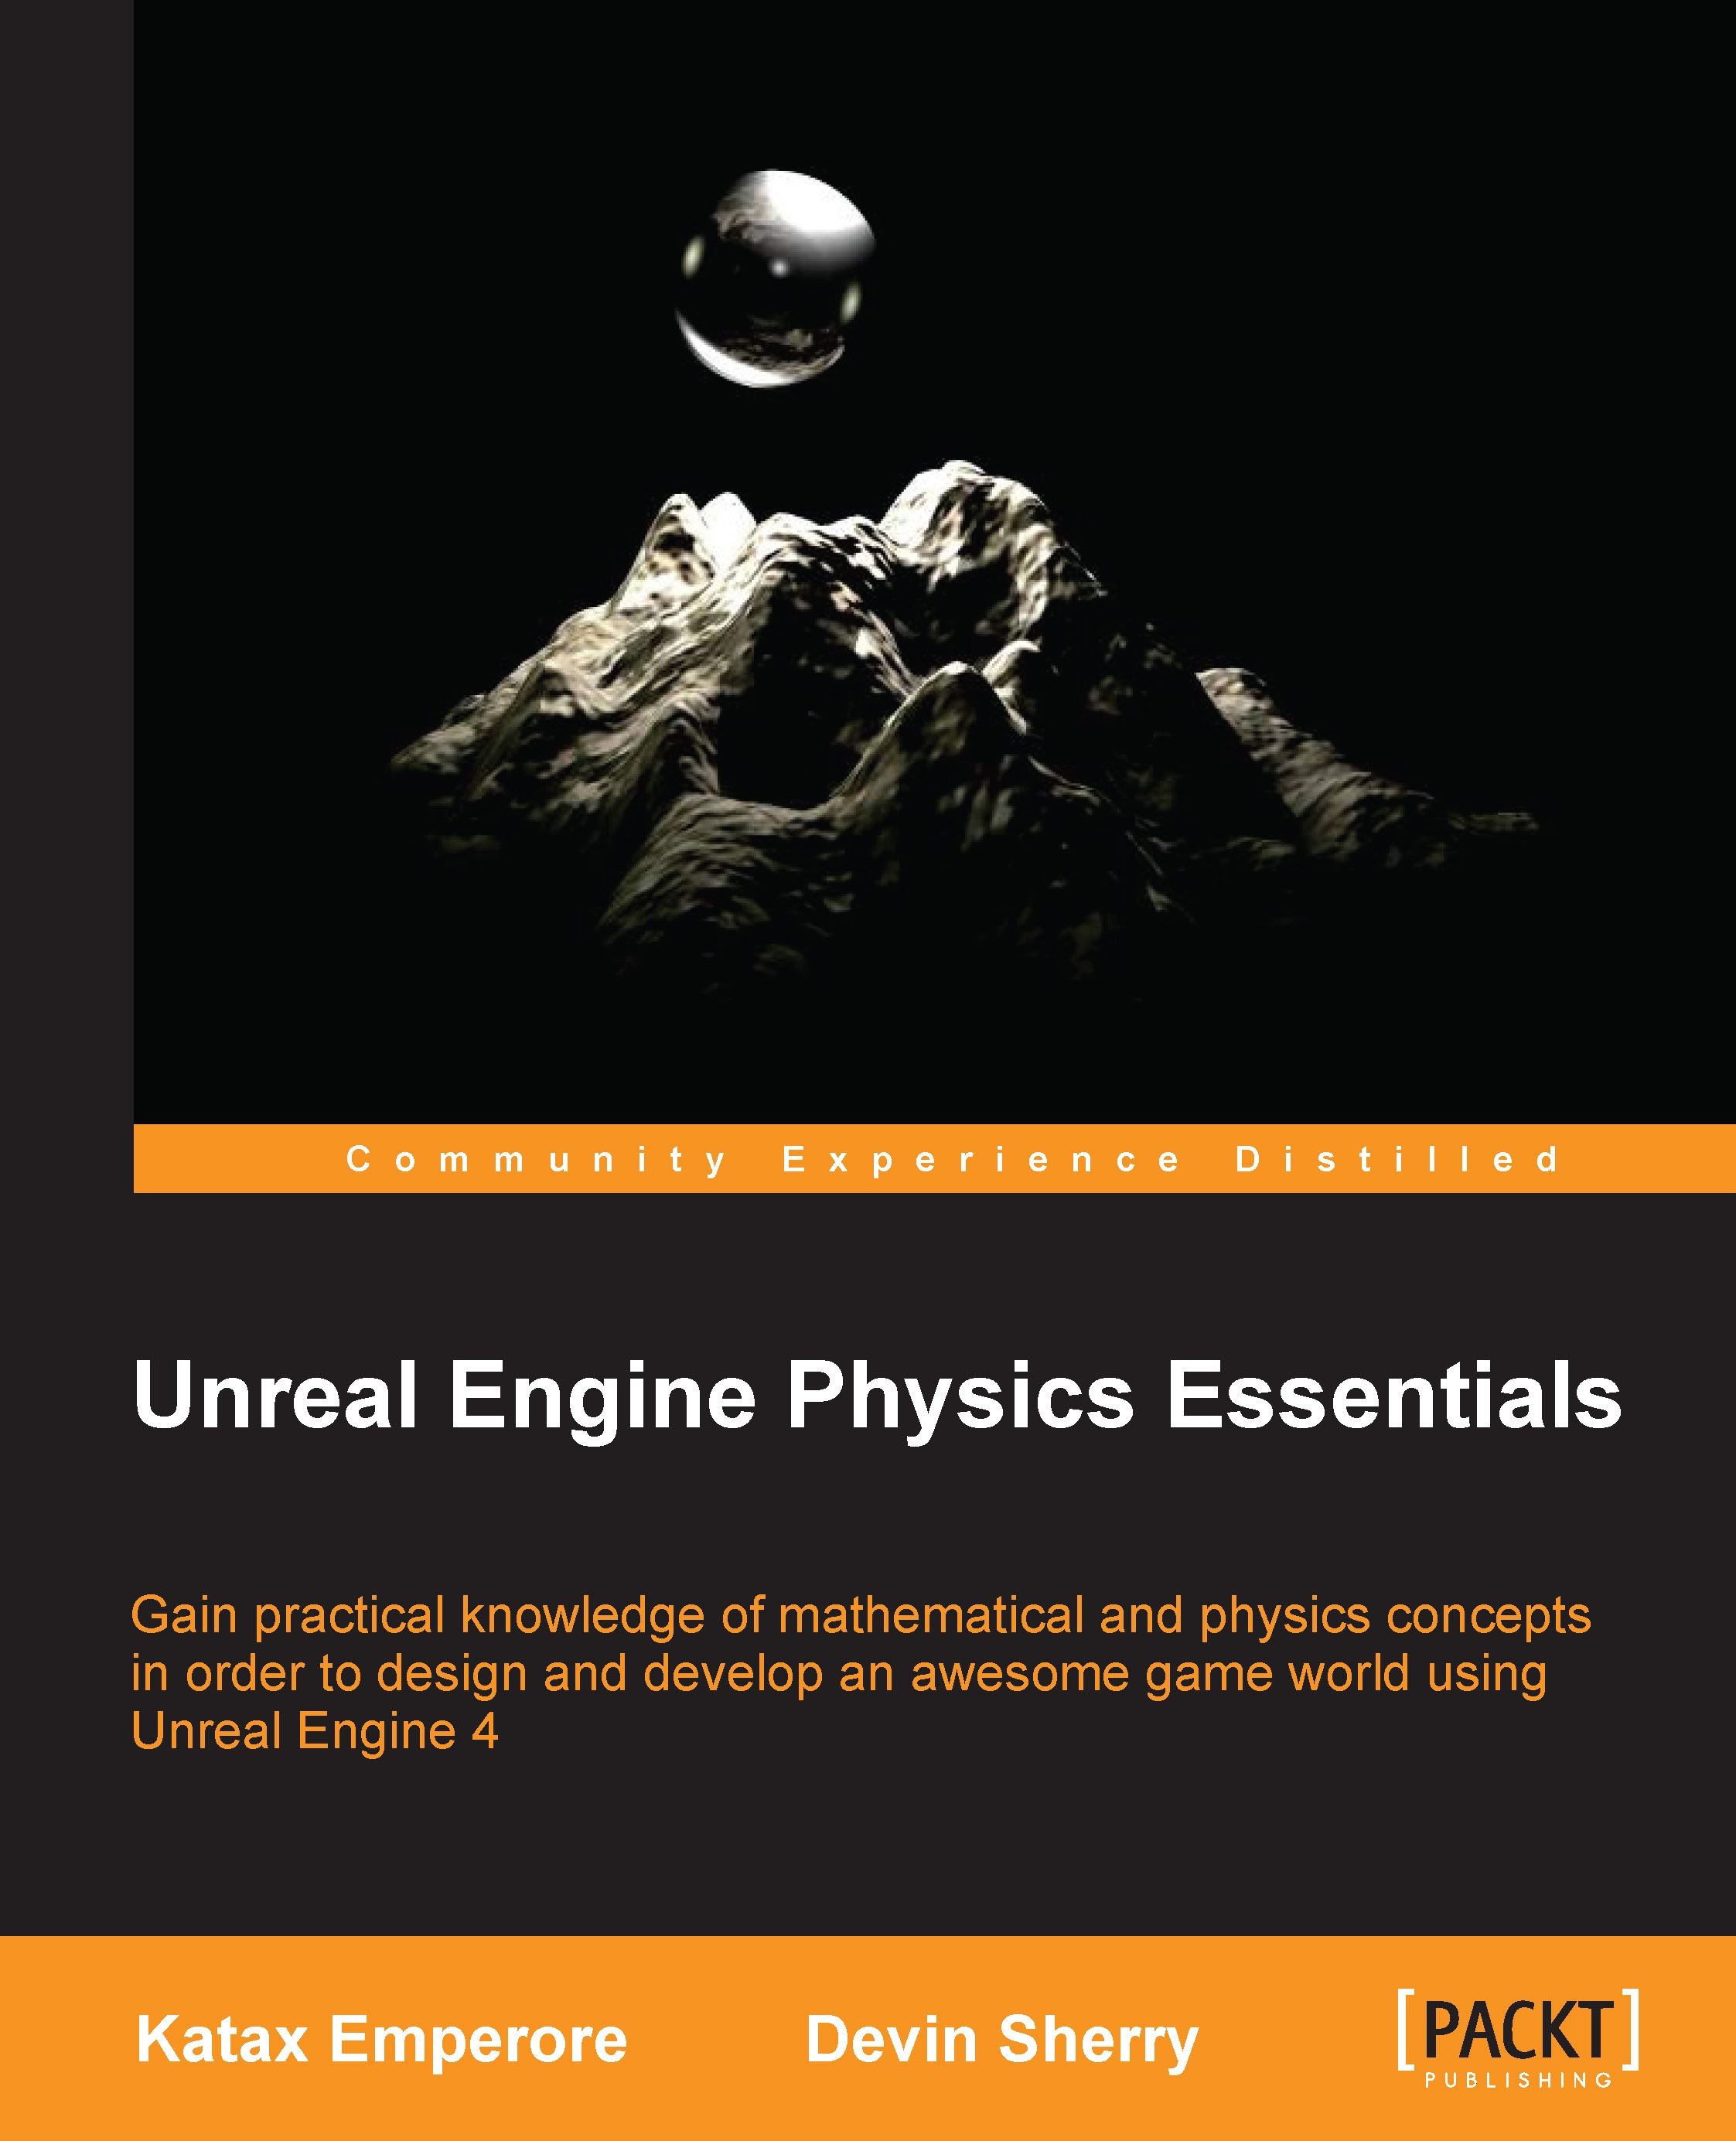 Unreal engine physics essentials by katax emperore devin sherry unreal engine physics essentials 1st edition malvernweather Images